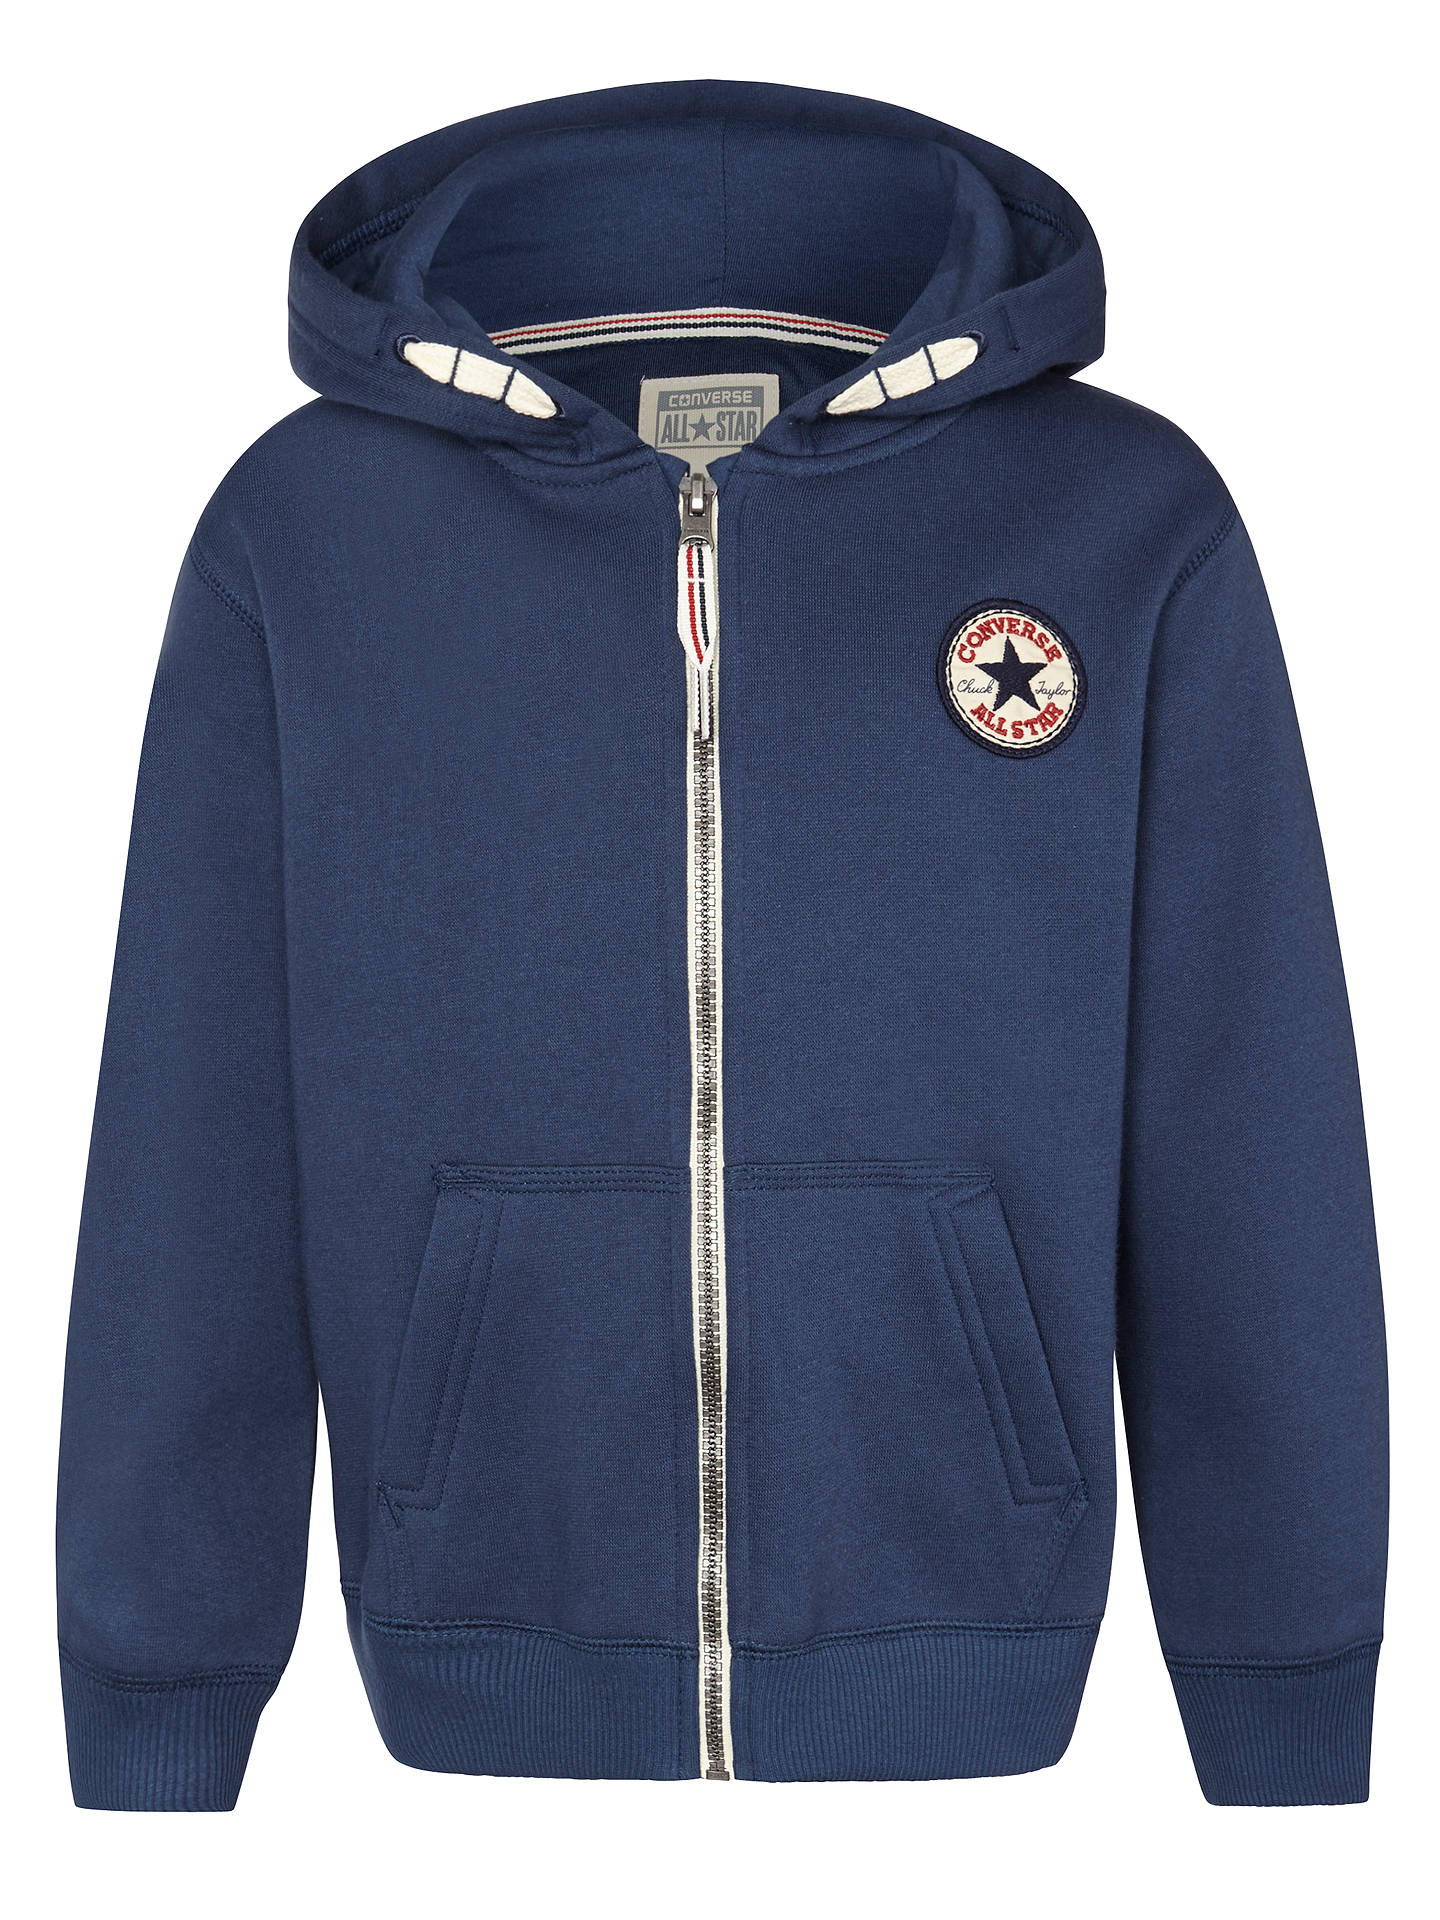 Converse All Star Zip Hoodie at John Lewis   Partners 0c3304cbe